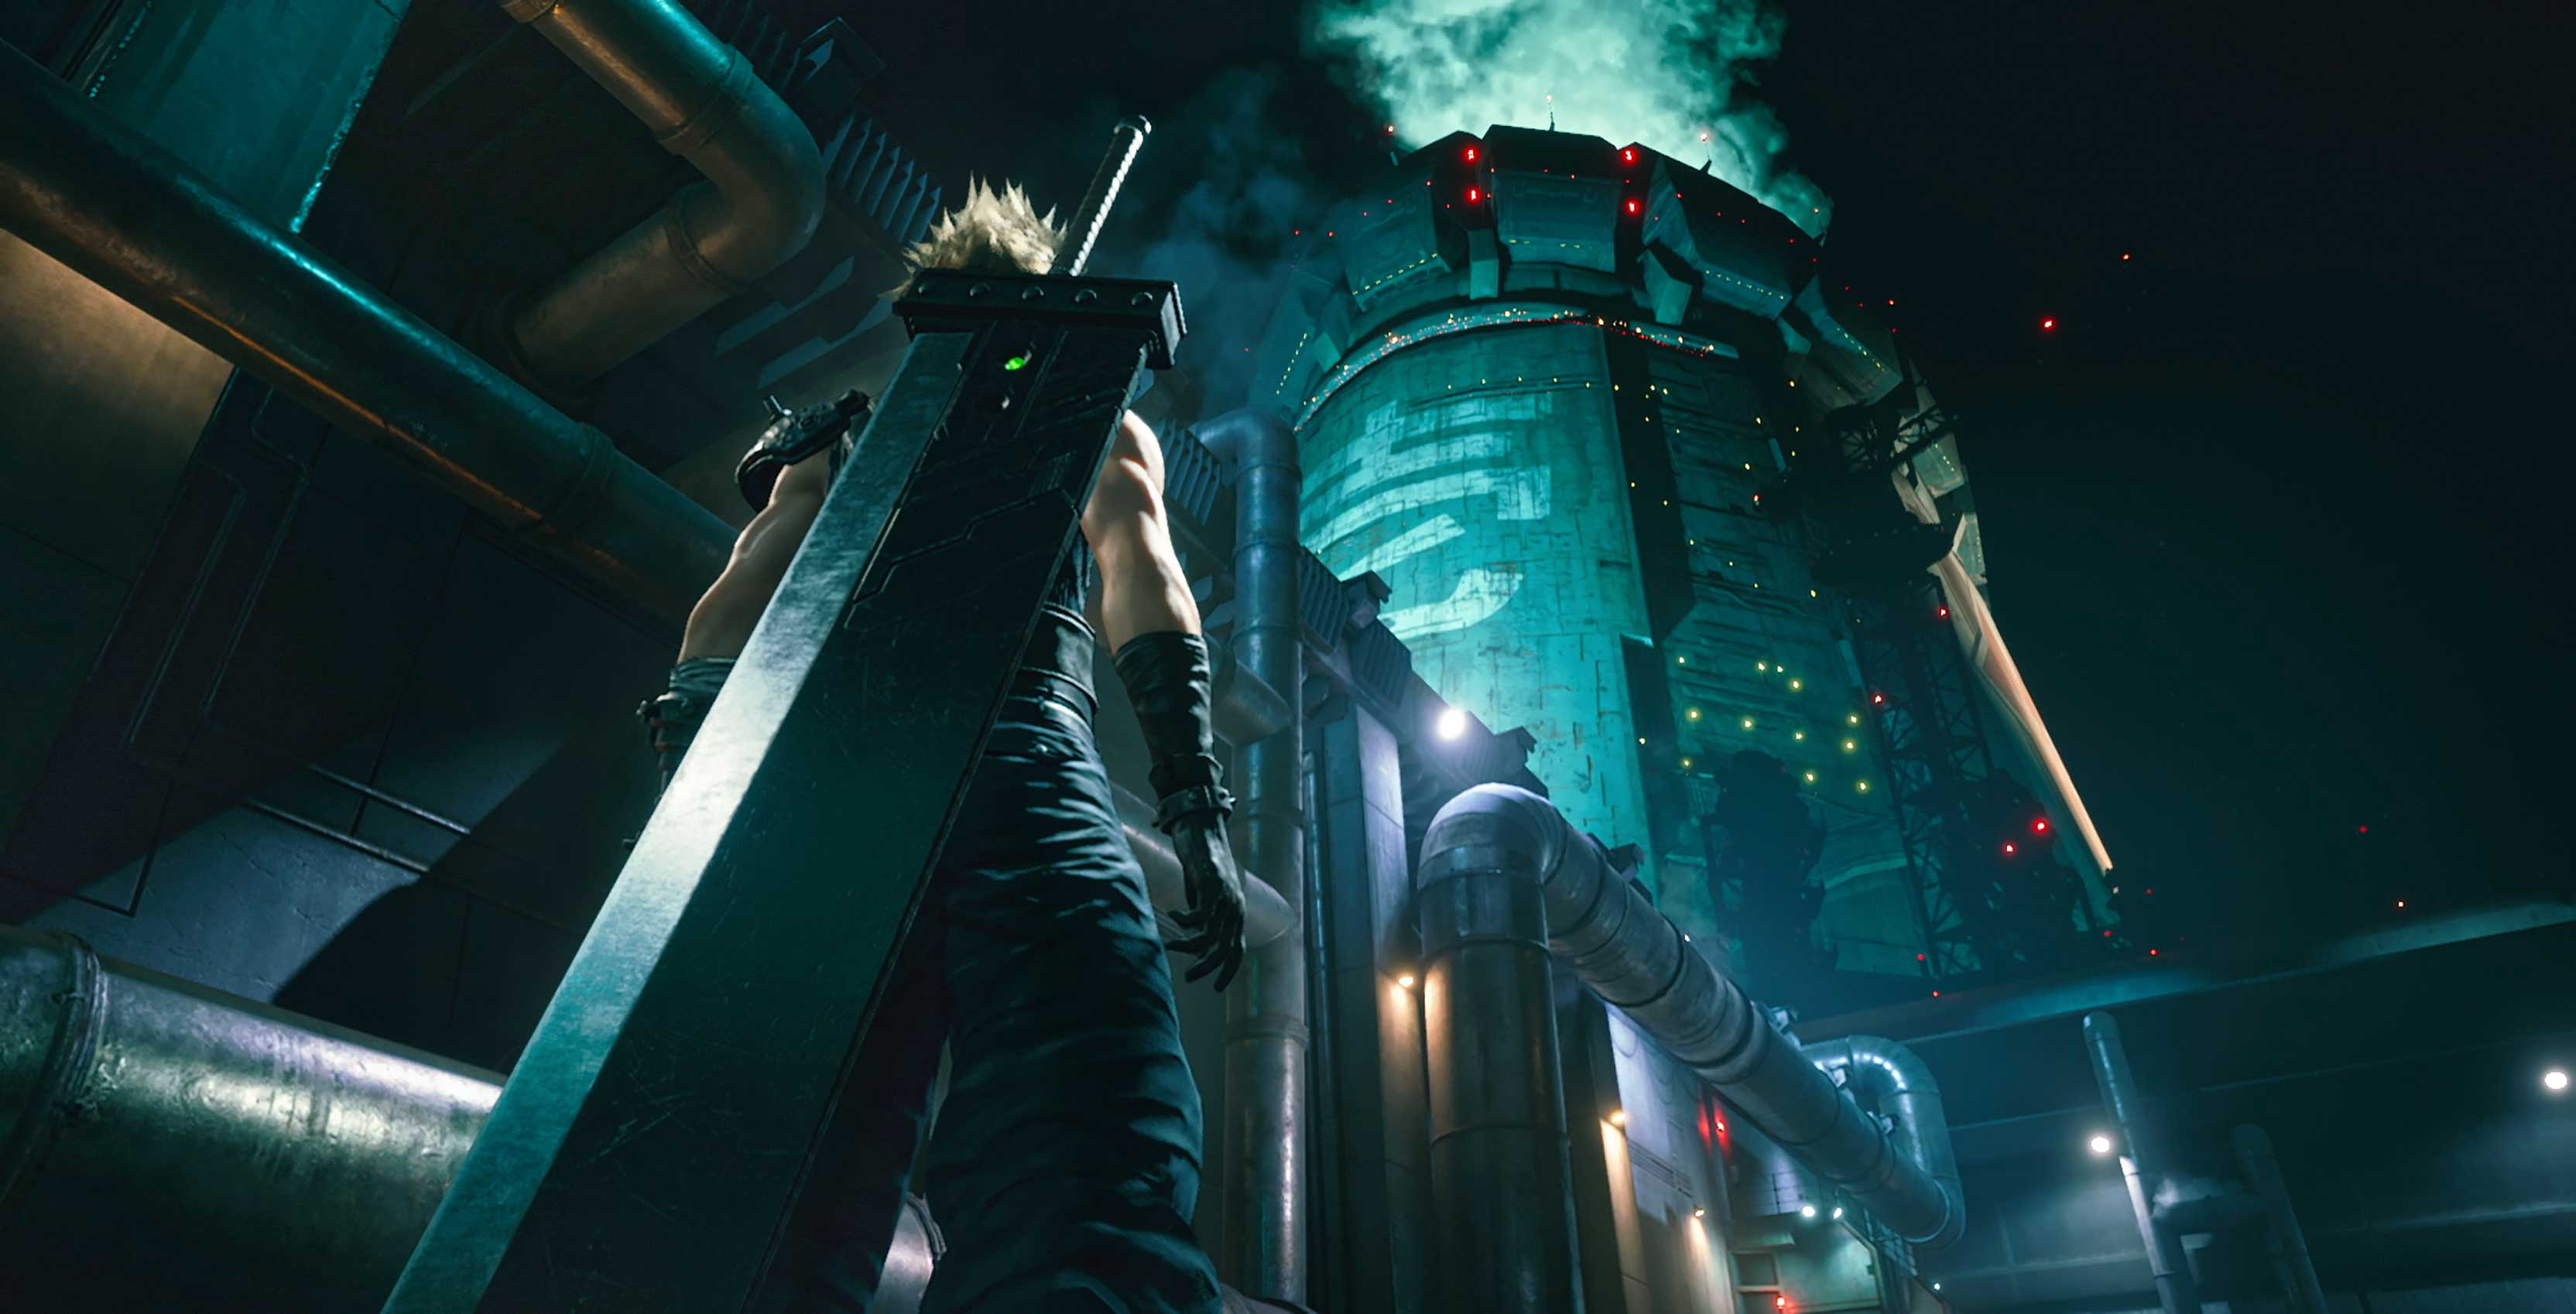 Final Fantasy VII Remake Shinra building